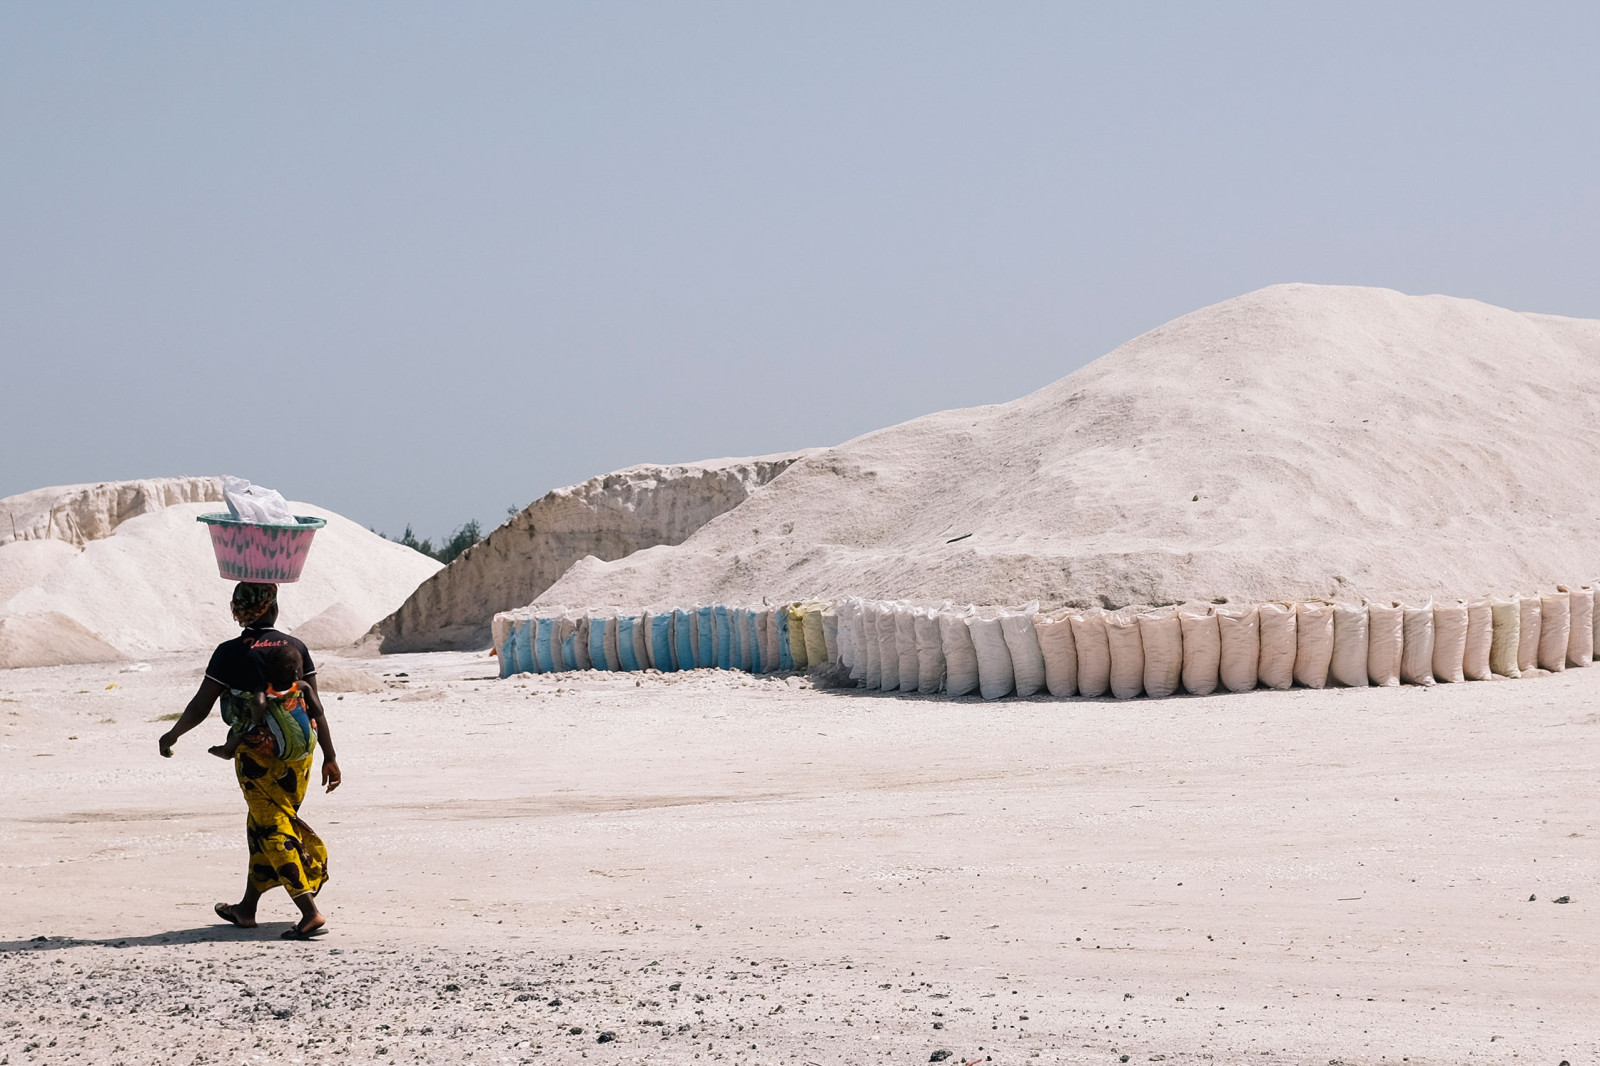 hills like white elephants the senegalese salt gatherers of lac by moresleep